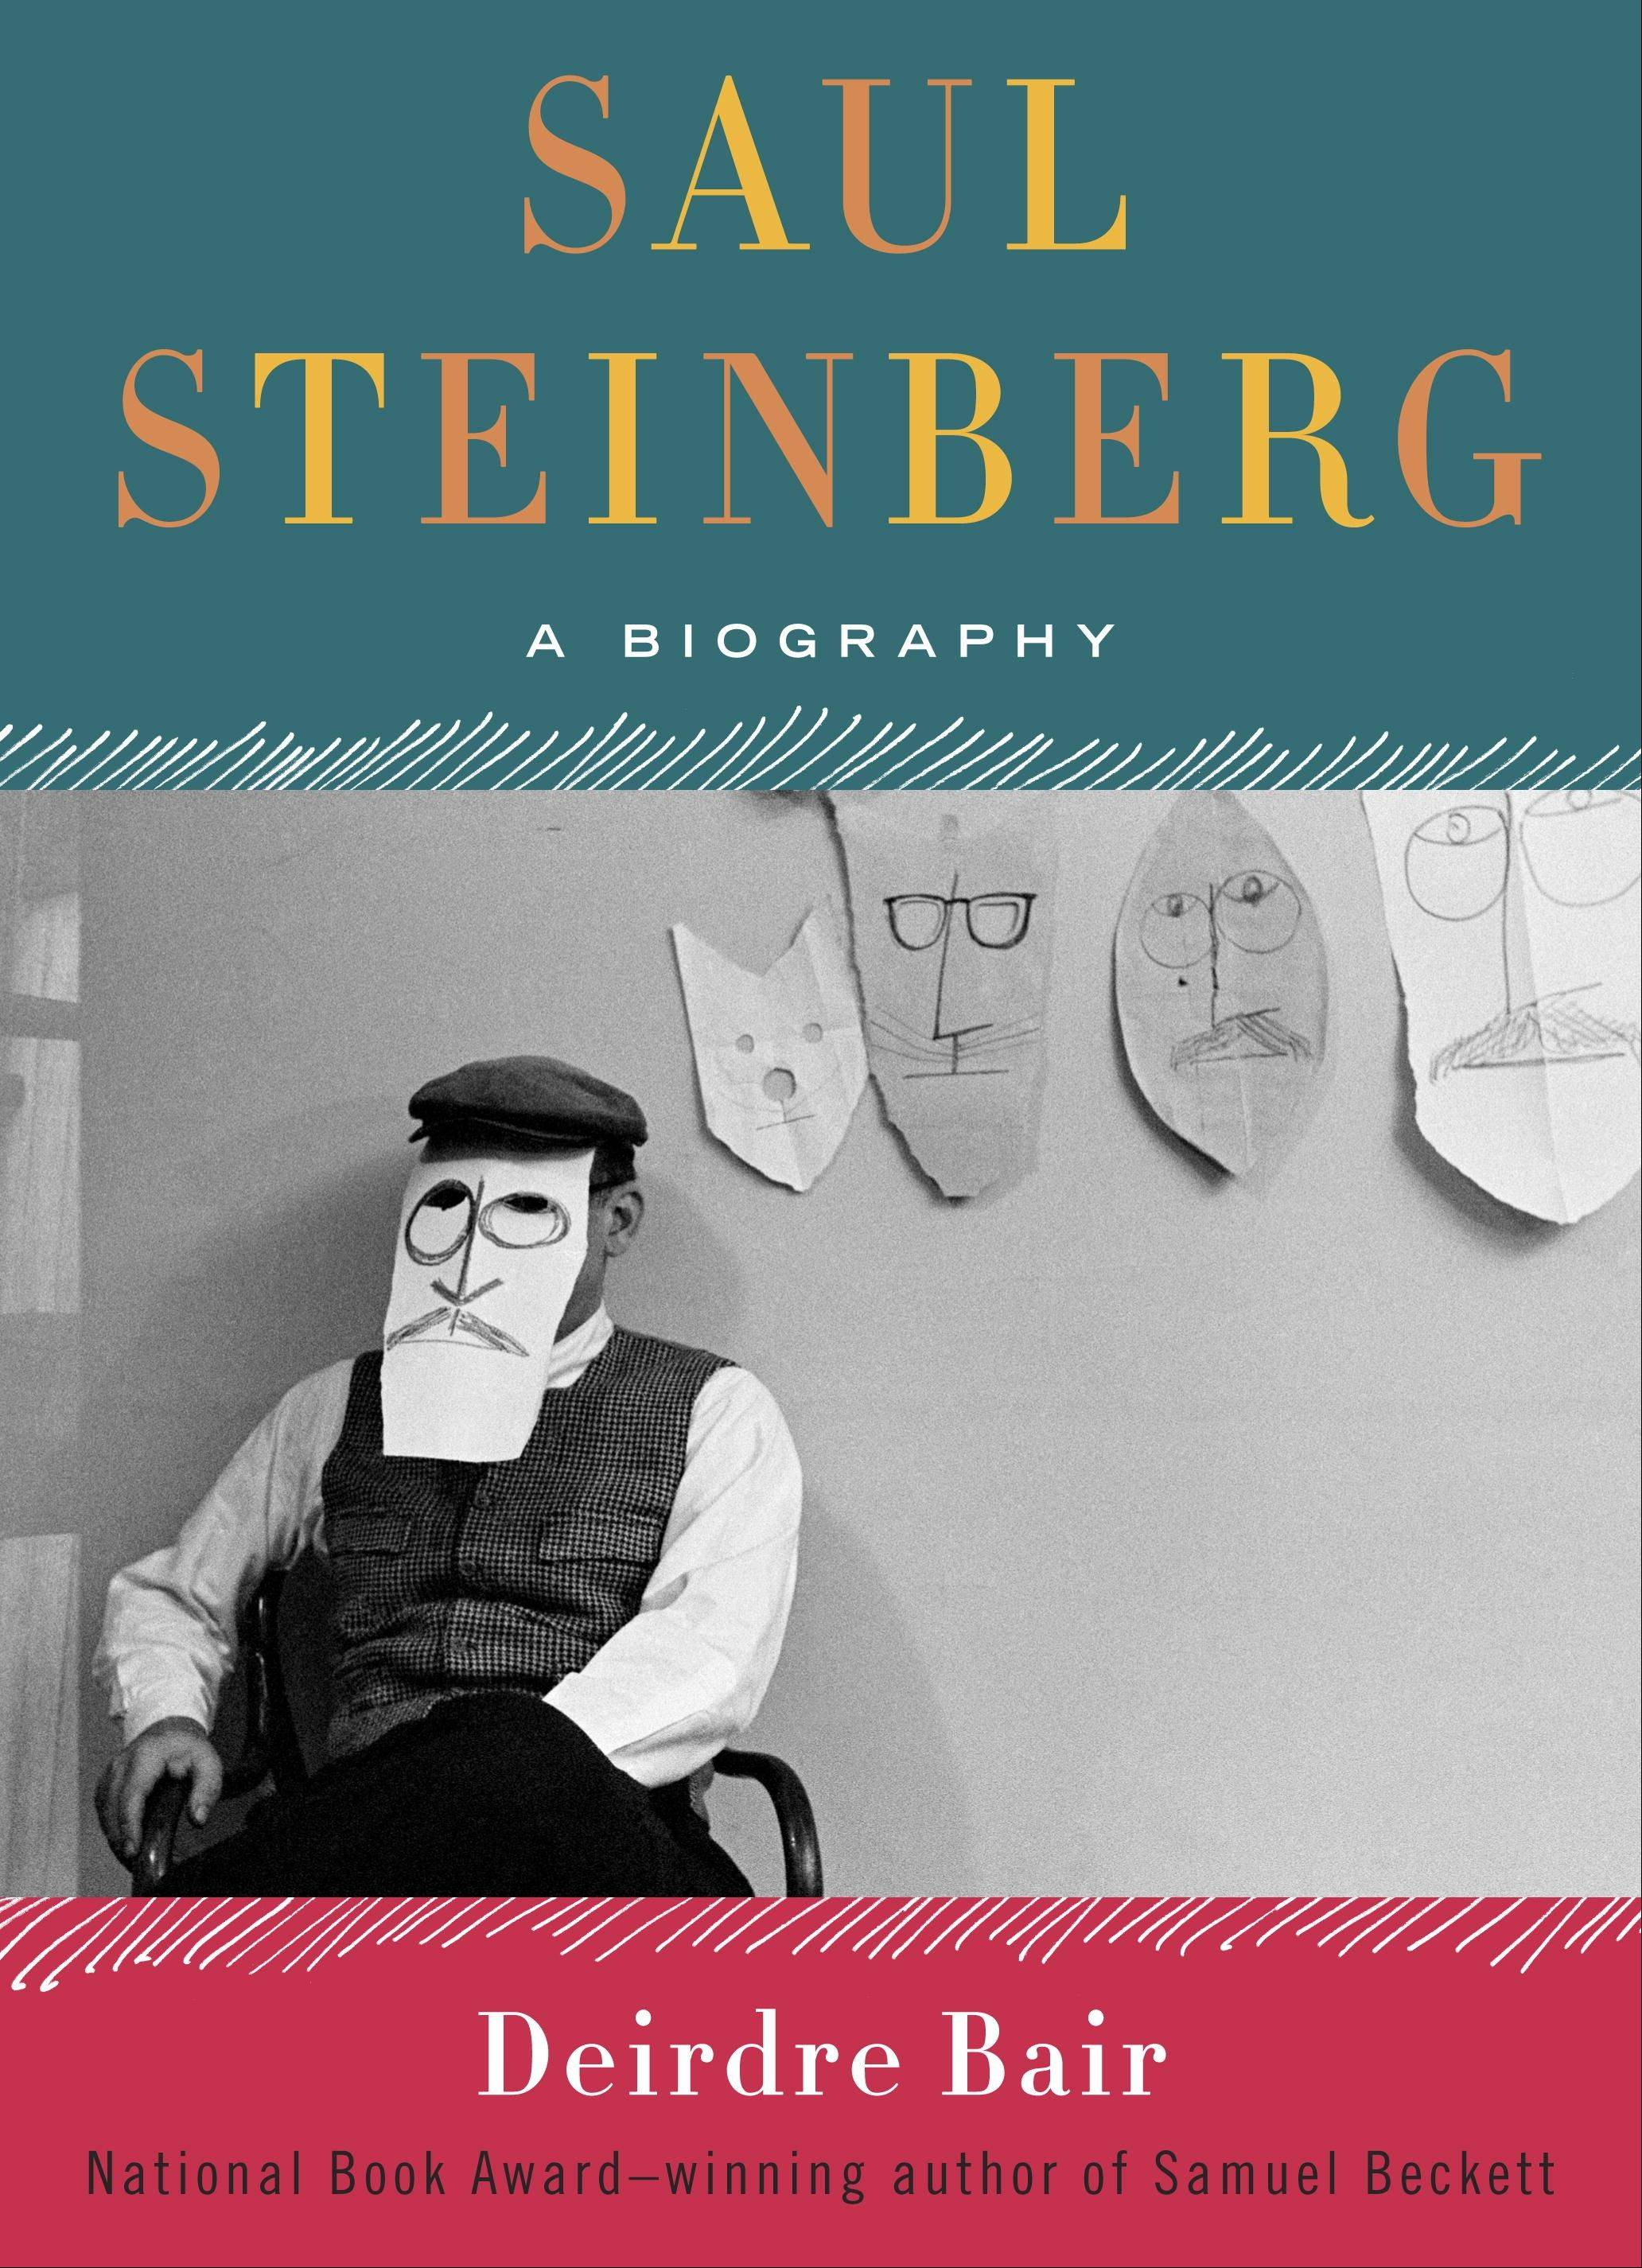 """Saul Steinberg: A Biography"" by Deirdre Bair"